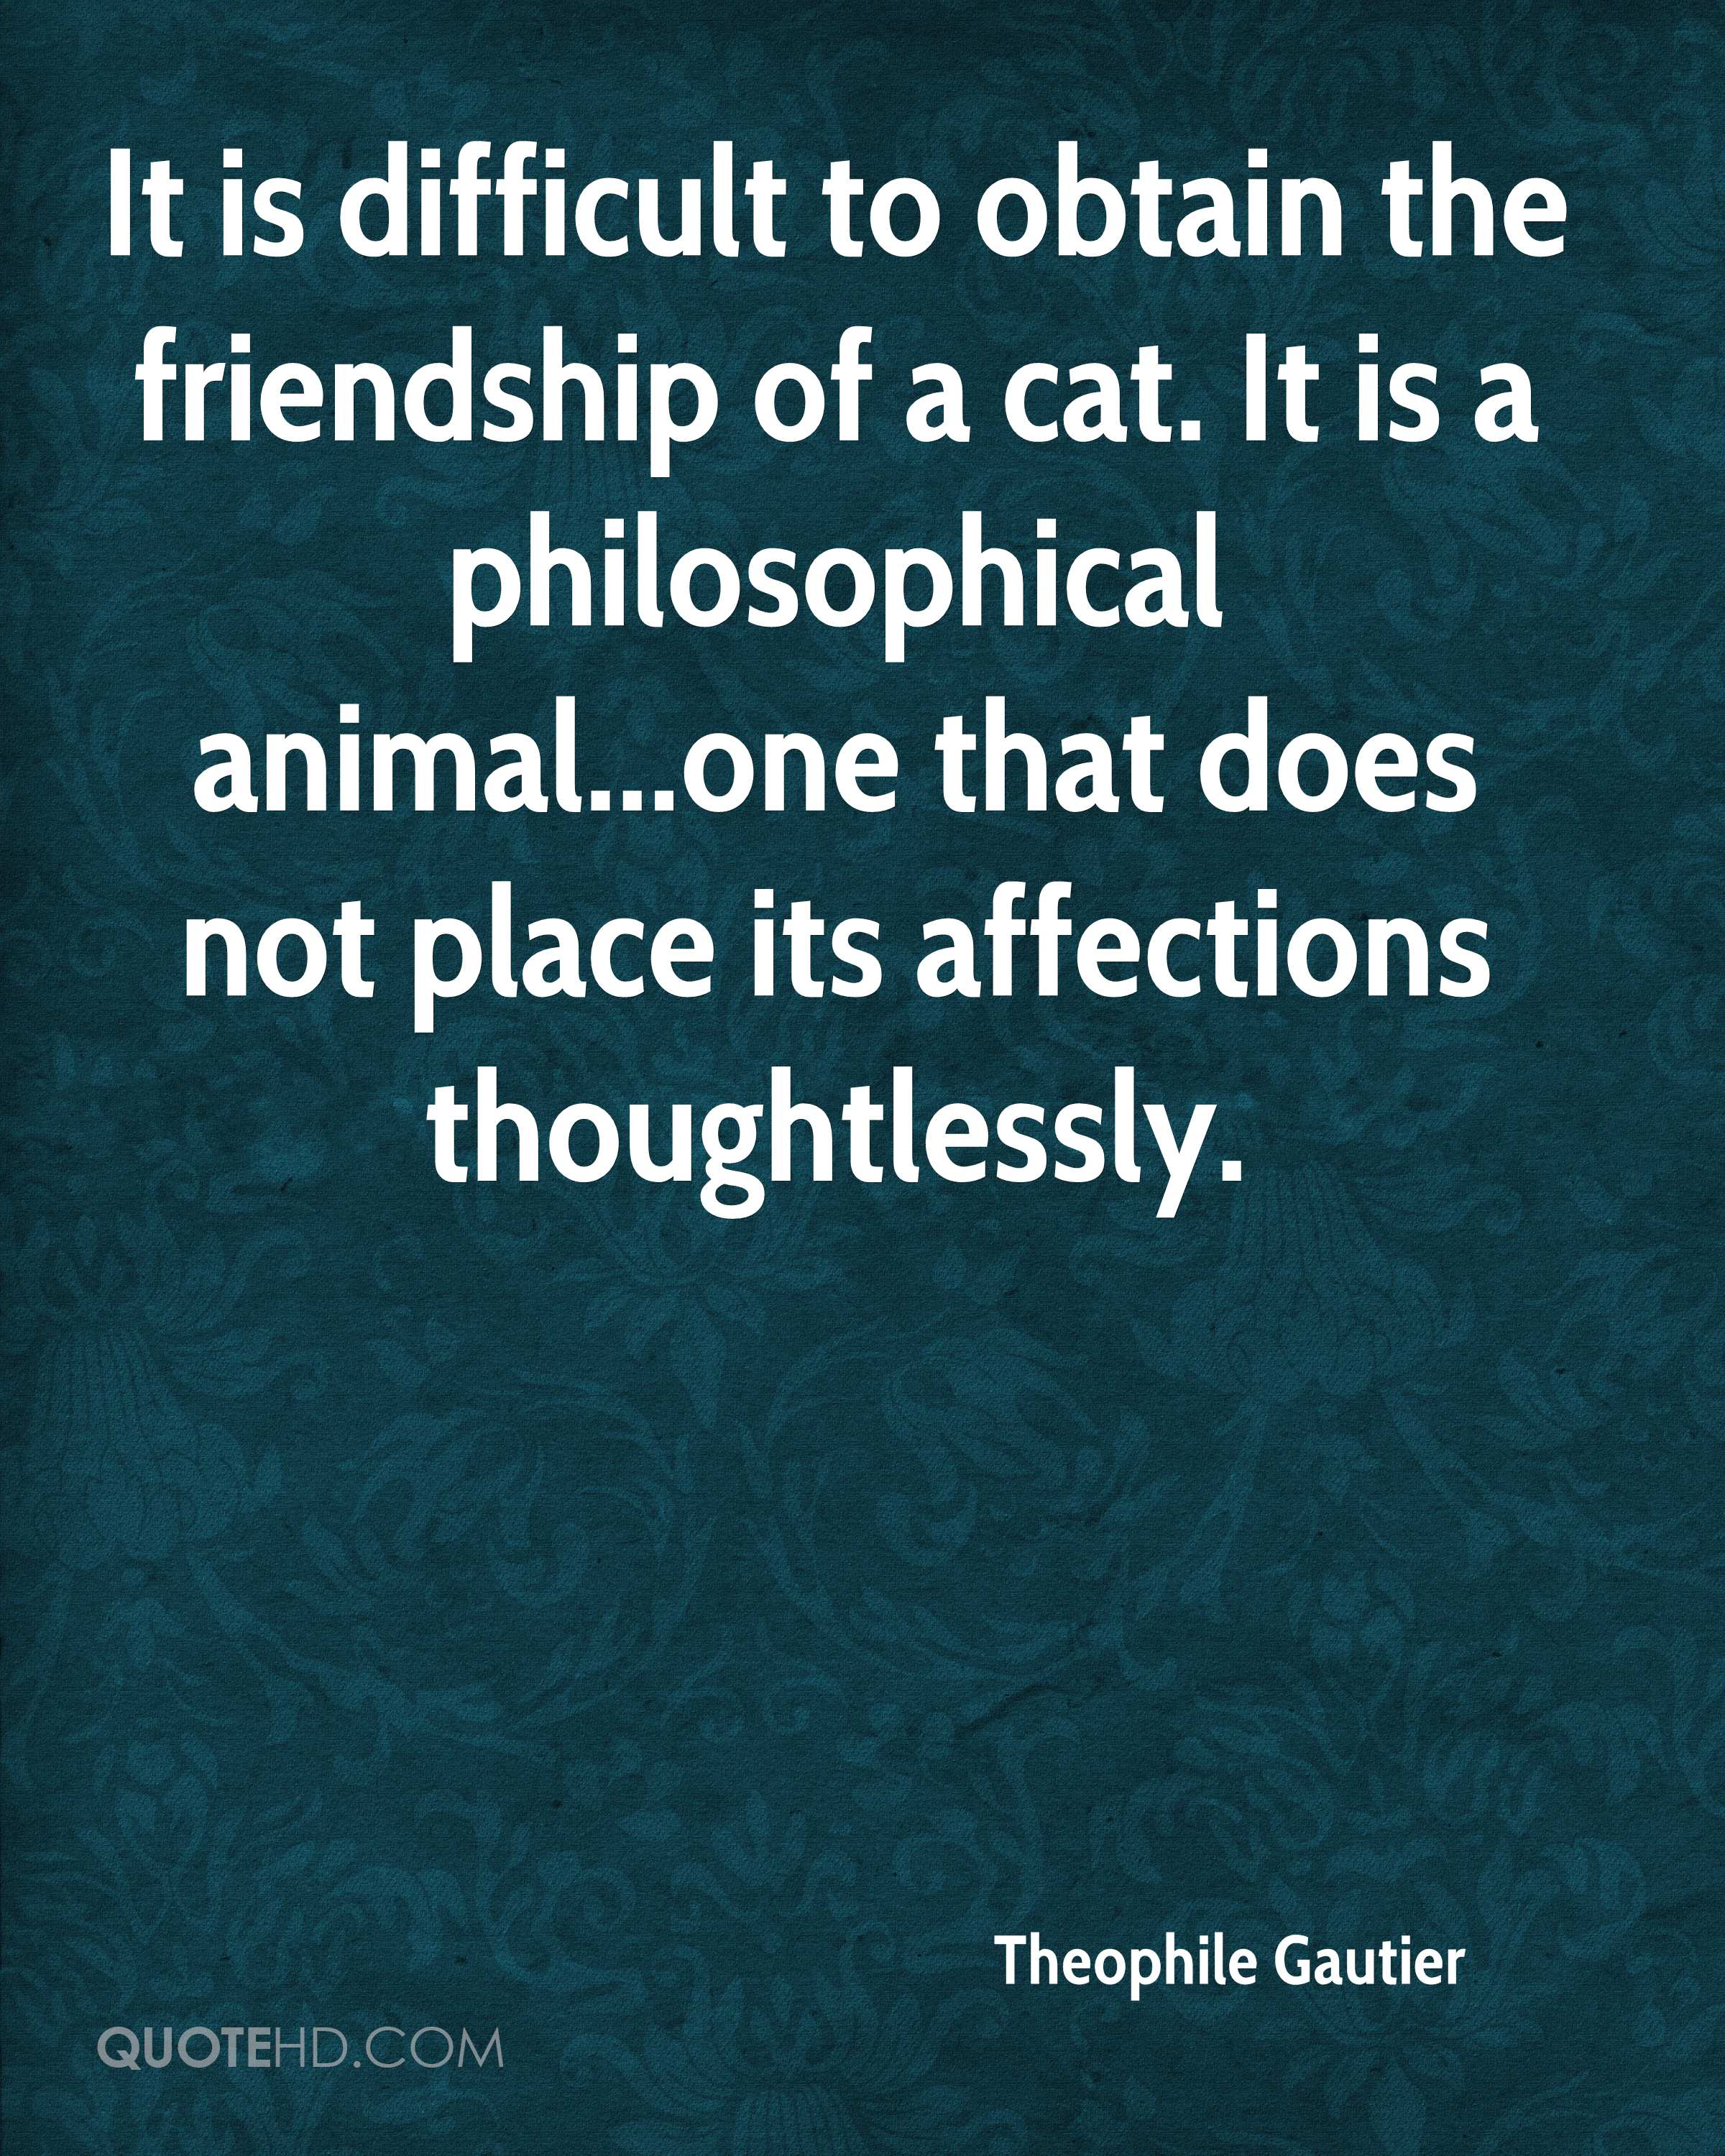 It is difficult to obtain the friendship of a cat. It is a philosophical animal...one that does not place its affections thoughtlessly.